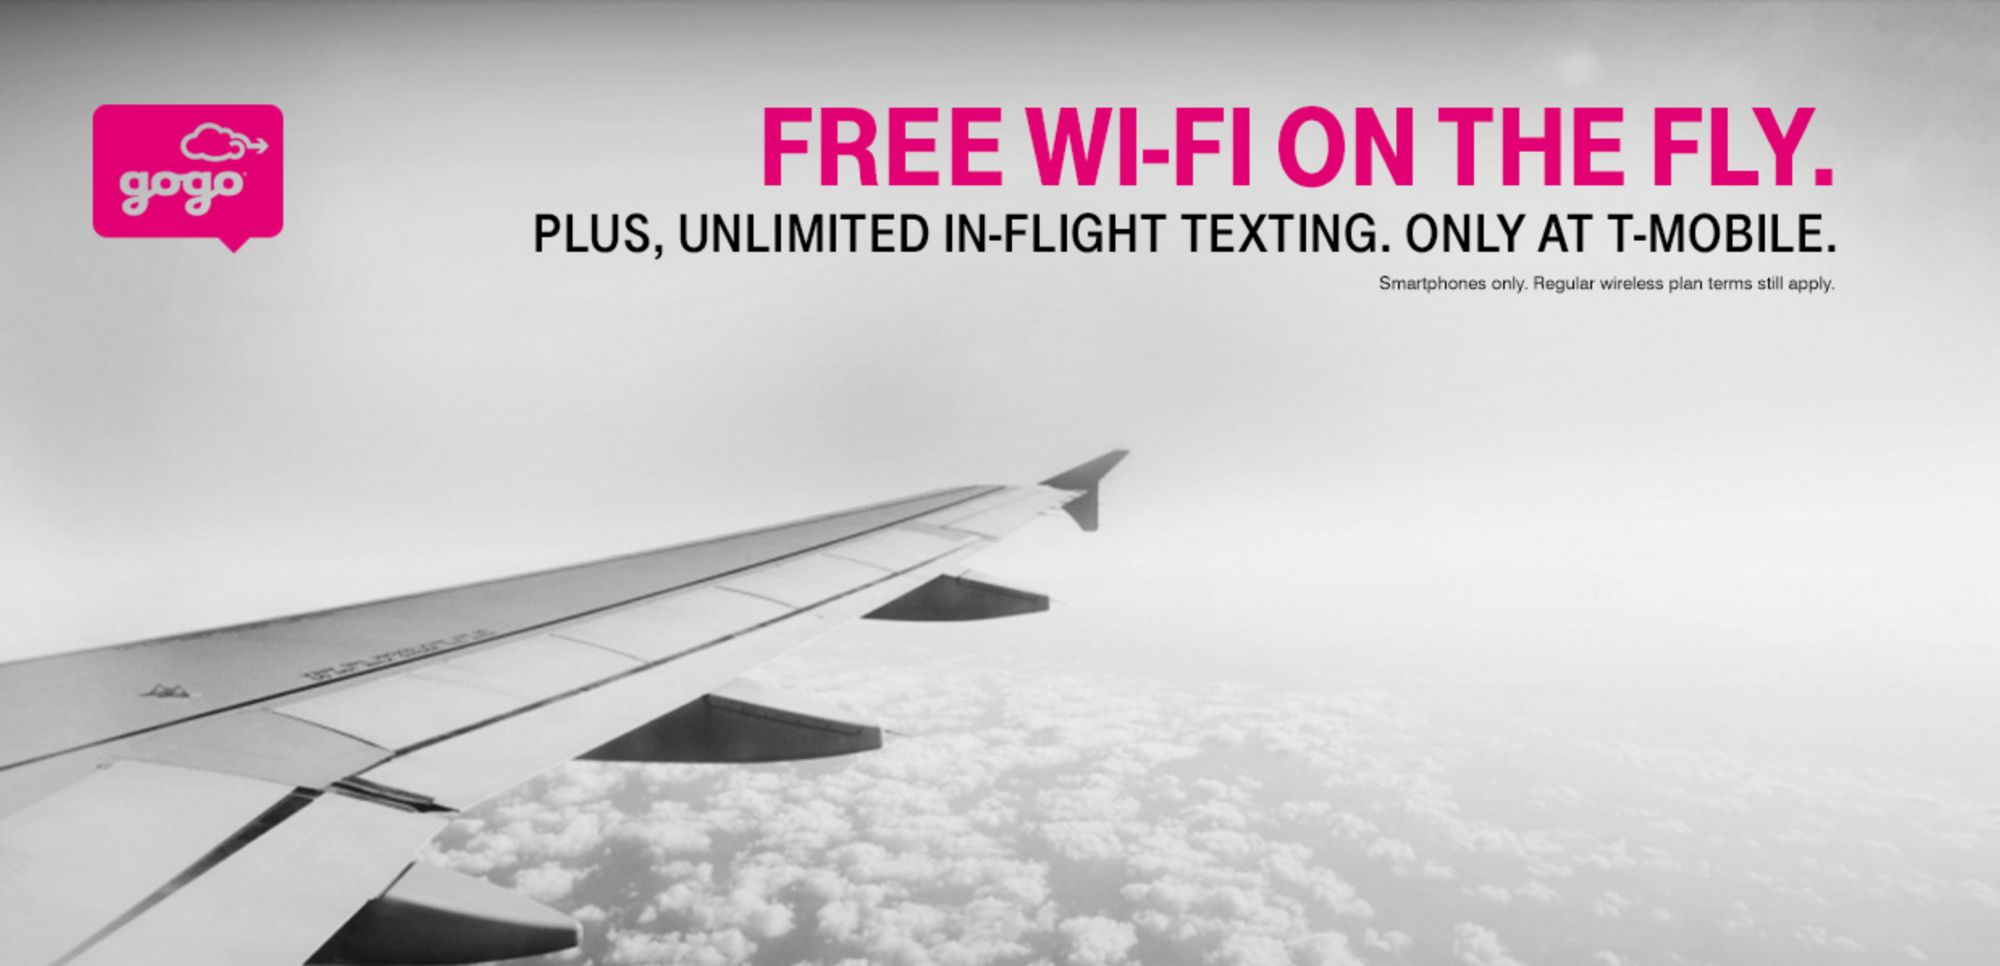 On my last flight using Gogo's service, I struggled to get 1mpbs. It Only Works on Mobile: Technically, free T-Mobile inflight service only works on mobile devices. If you connect to Gogo on your laptop you won't see an option to connect with the T-Mobile plan.